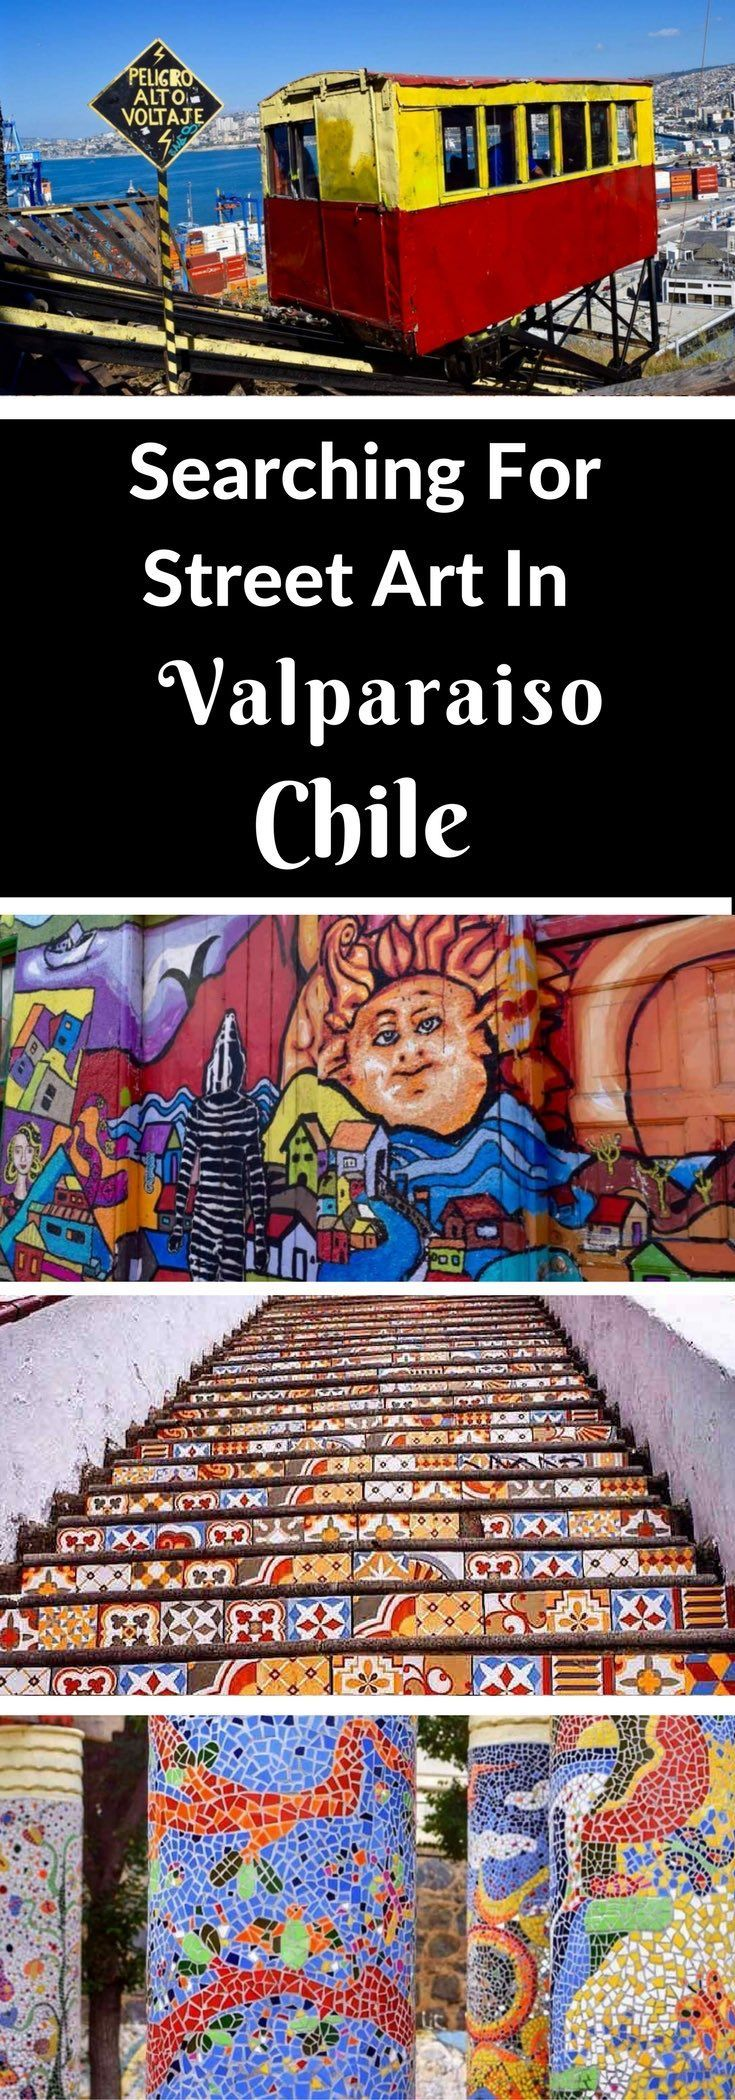 Searching For Street Art In Valparaiso, Chile. To learn more about #Valparaiso | #CasablancaValley click here: http://www.greatwinecapitals.com/capitals/valparaiso-casablanca-valley